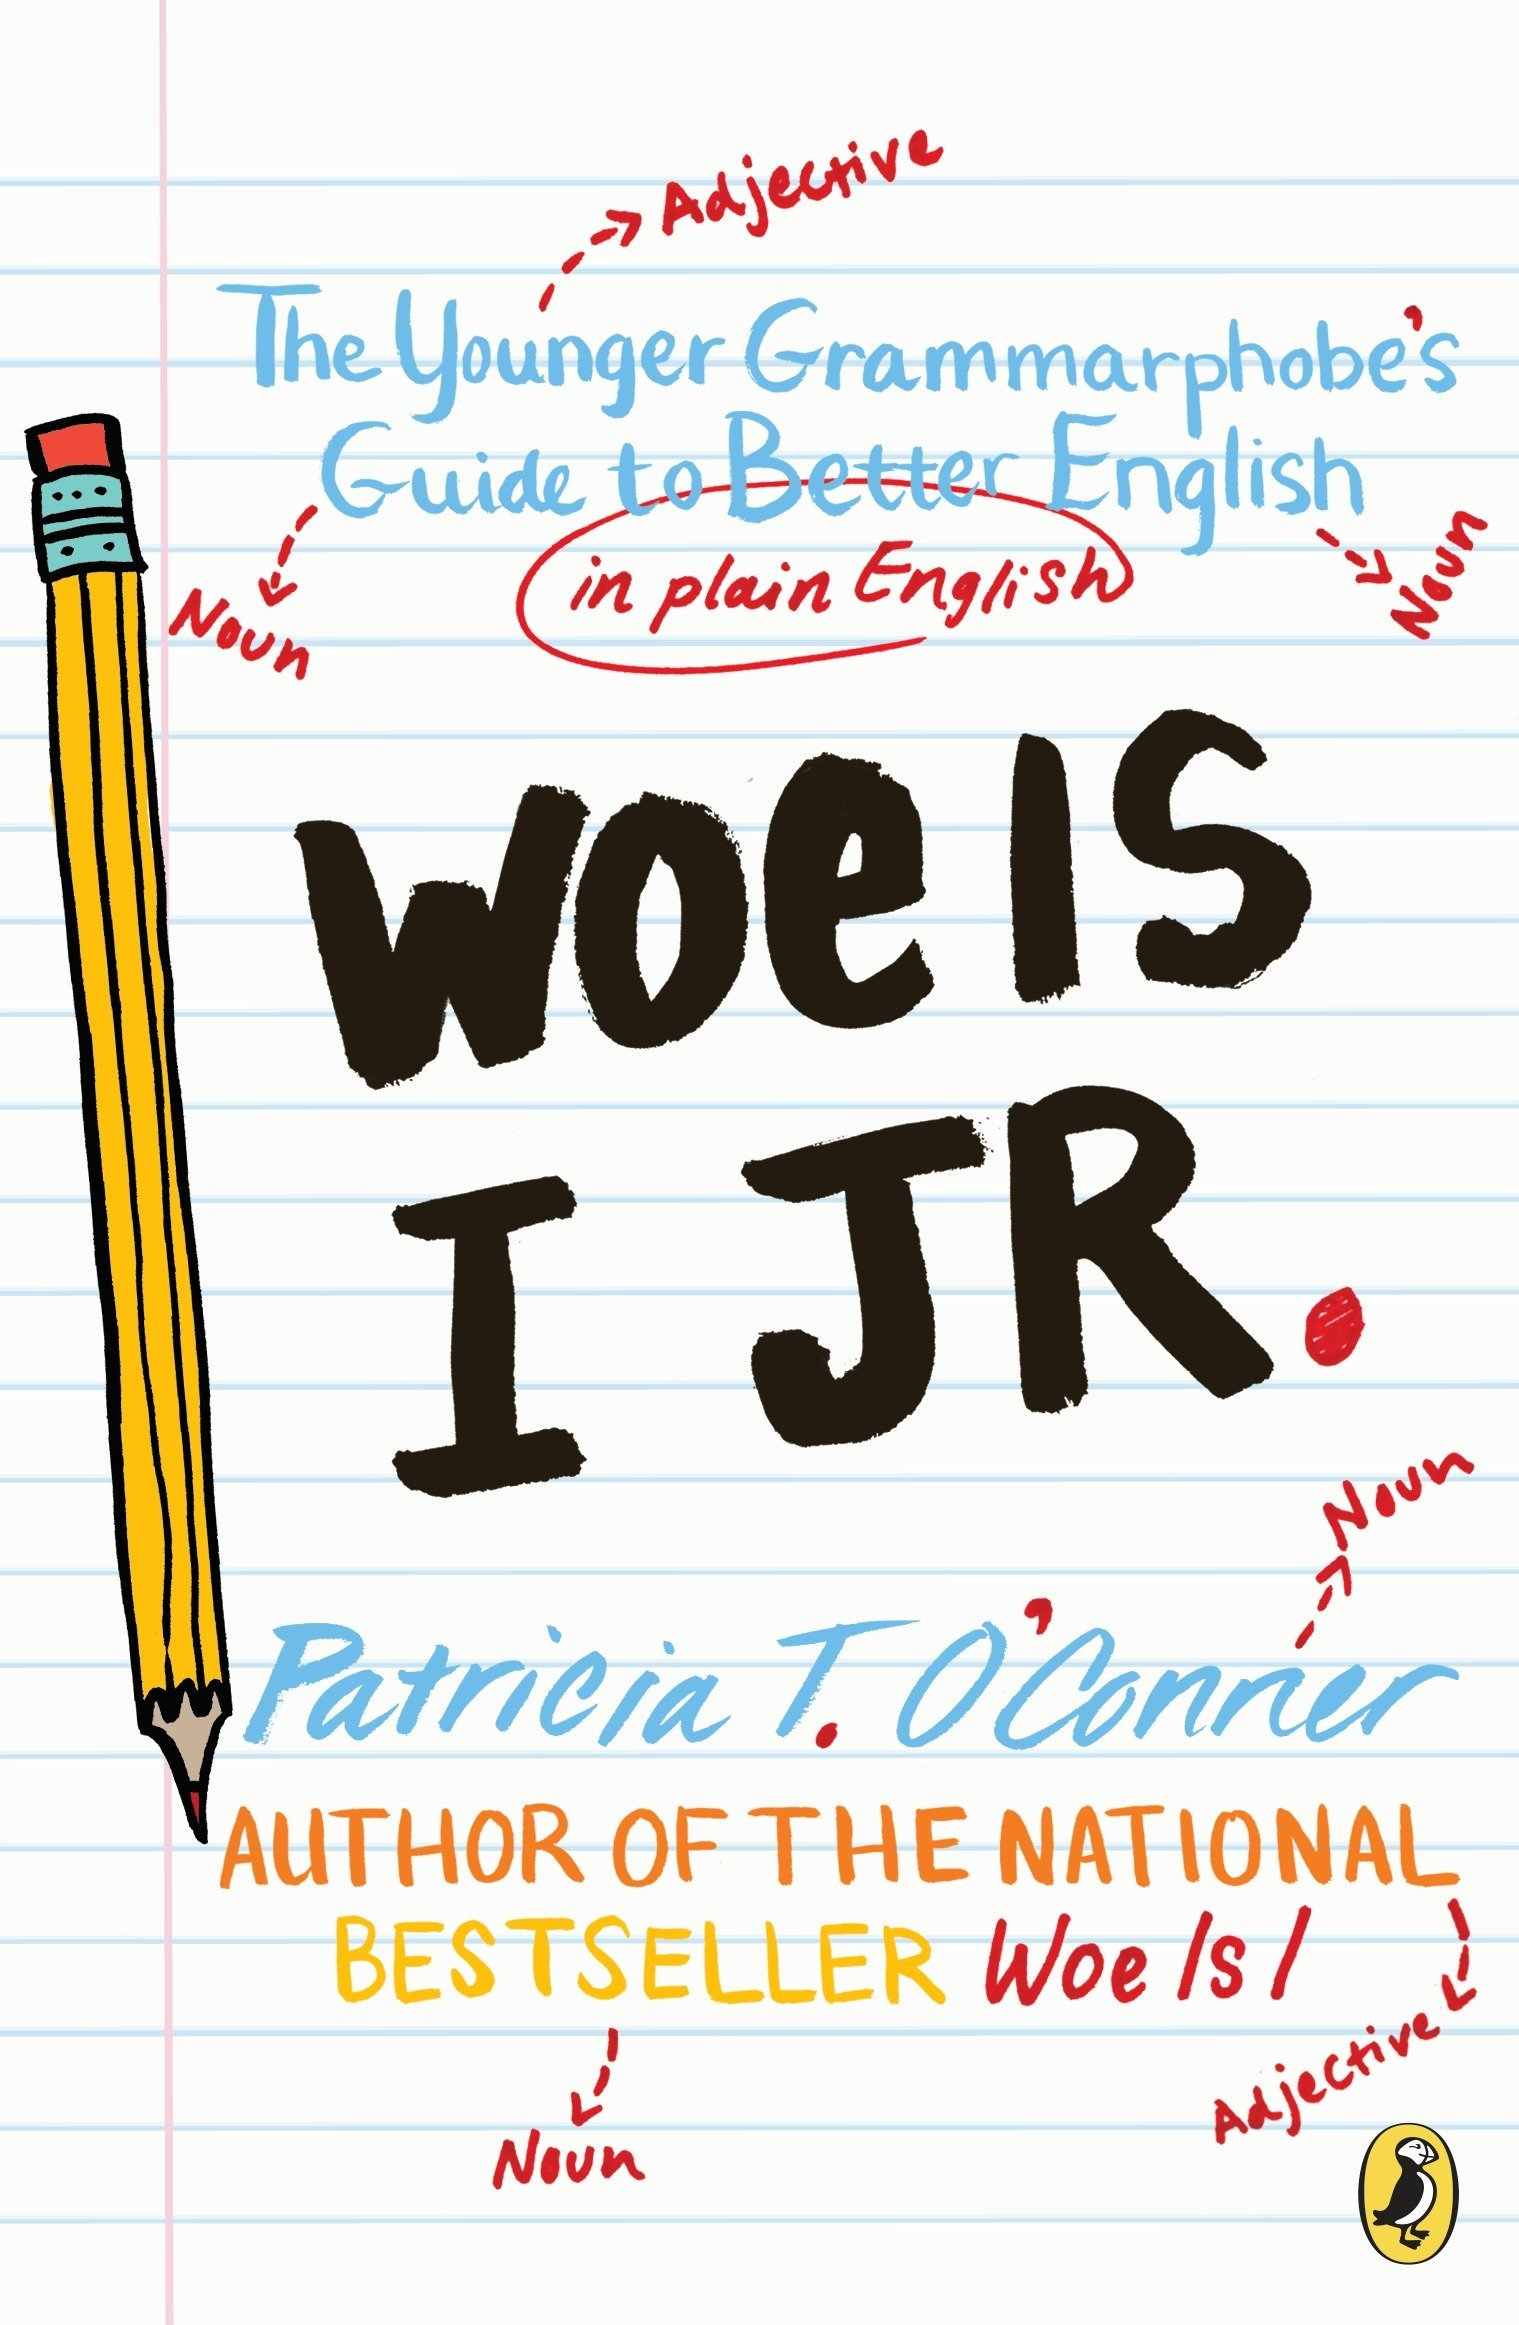 Woe is I Jr.: The Younger Grammarphobe's Guide to Better English in Plain  English: Patricia T. O'Conner, Tom Stiglich: 9780147519160: Amazon.com:  Books